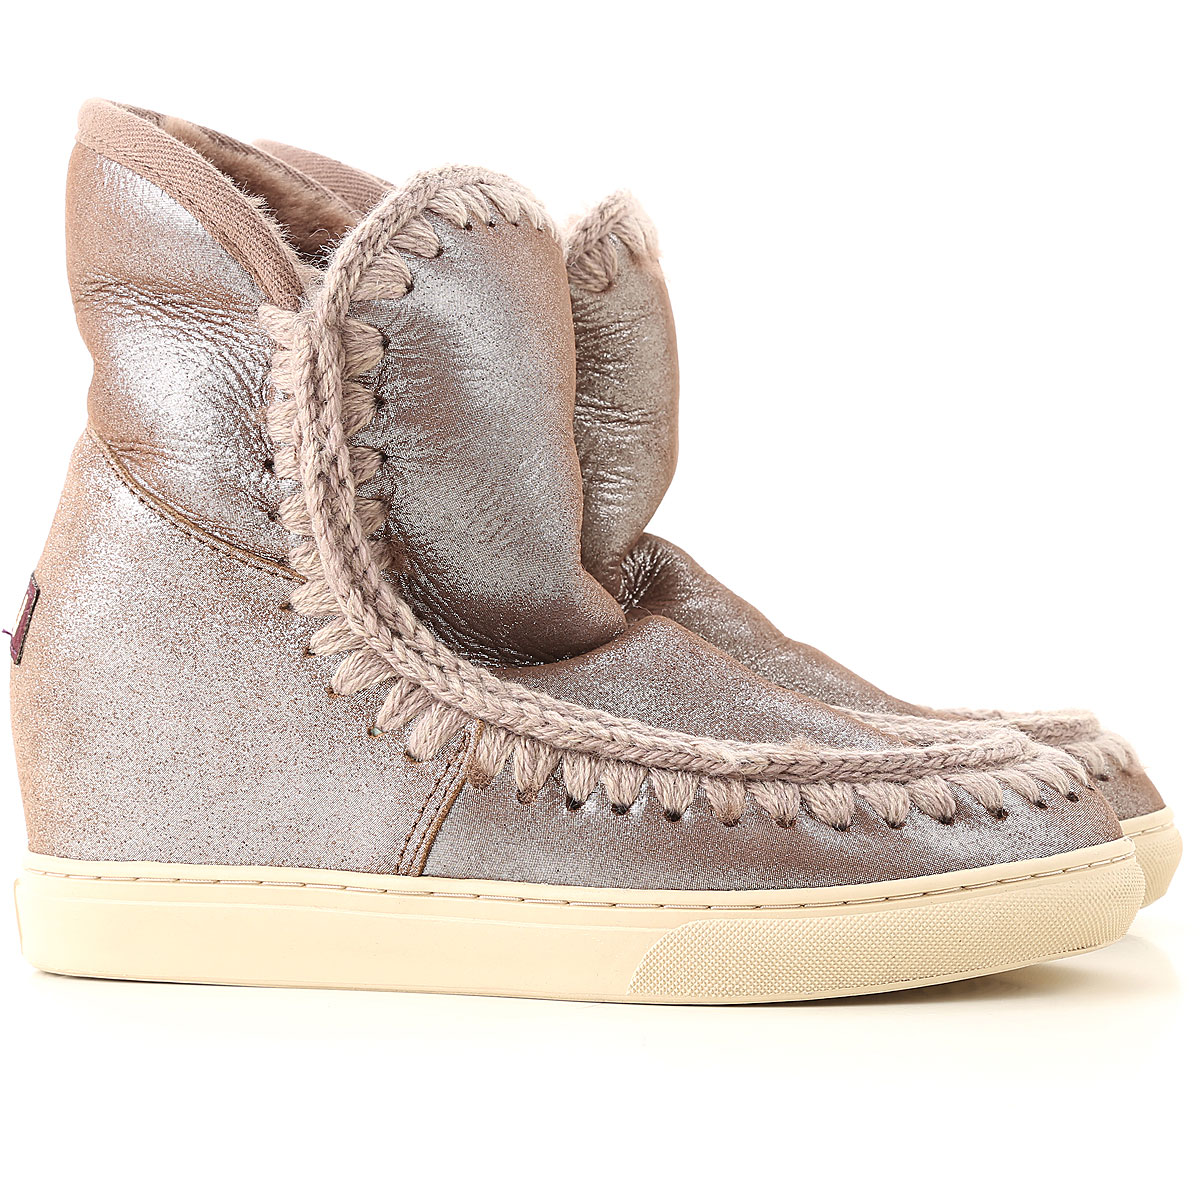 Mou Boots for Women, Booties On Sale in Outlet, Brown, Leather, 2019, EUR 37 - UK 4 - USA 6.5 EUR 38 - UK 5 - USA 7.5 EUR 39 - UK 6 - USA 8.5